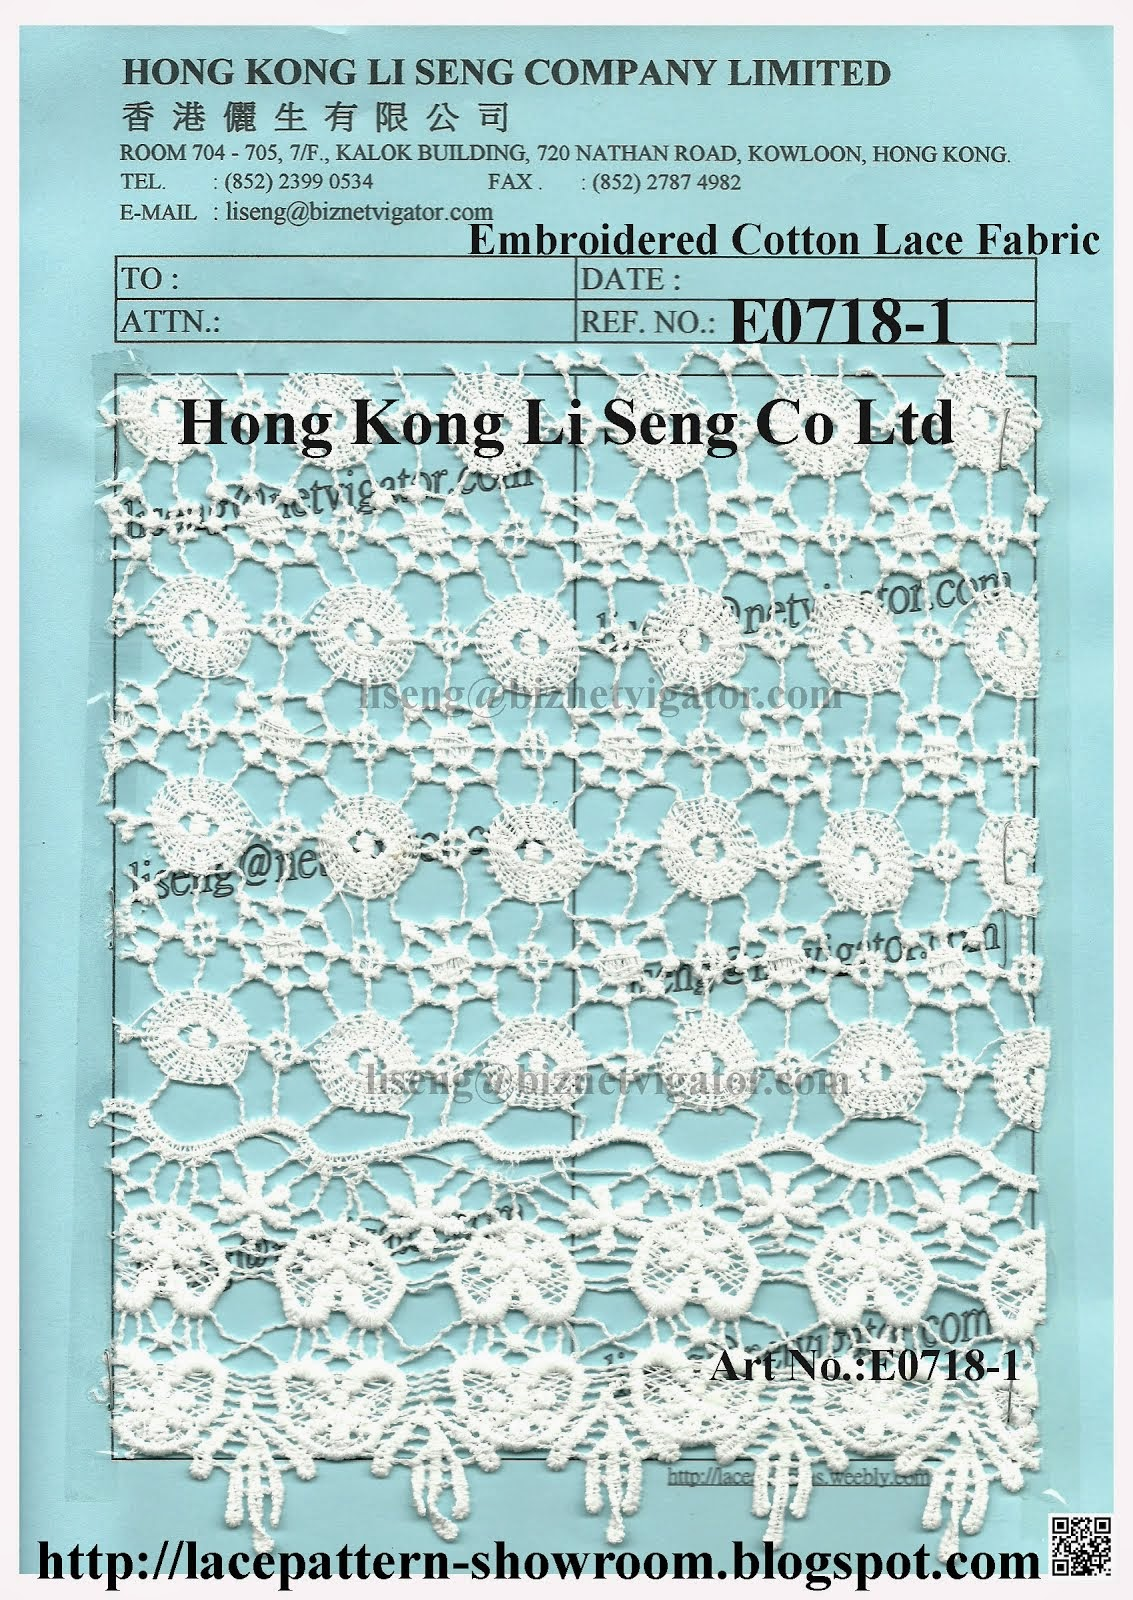 "Embroidered Cotton Lace Fabric Manufacturer Wholesaler and Supplier - "" Hong Kong Li Seng Co Ltd """